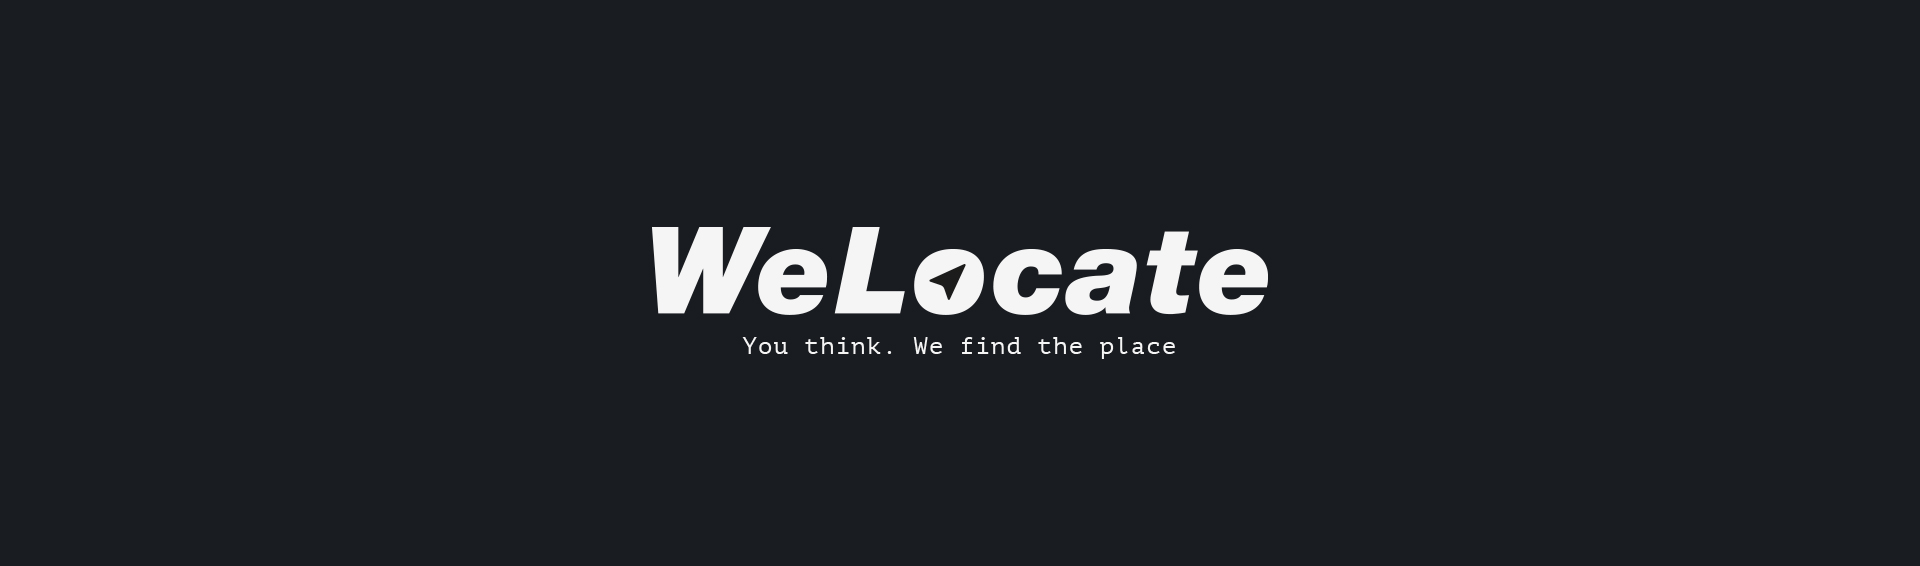 welocate_logotype_identity_corporate